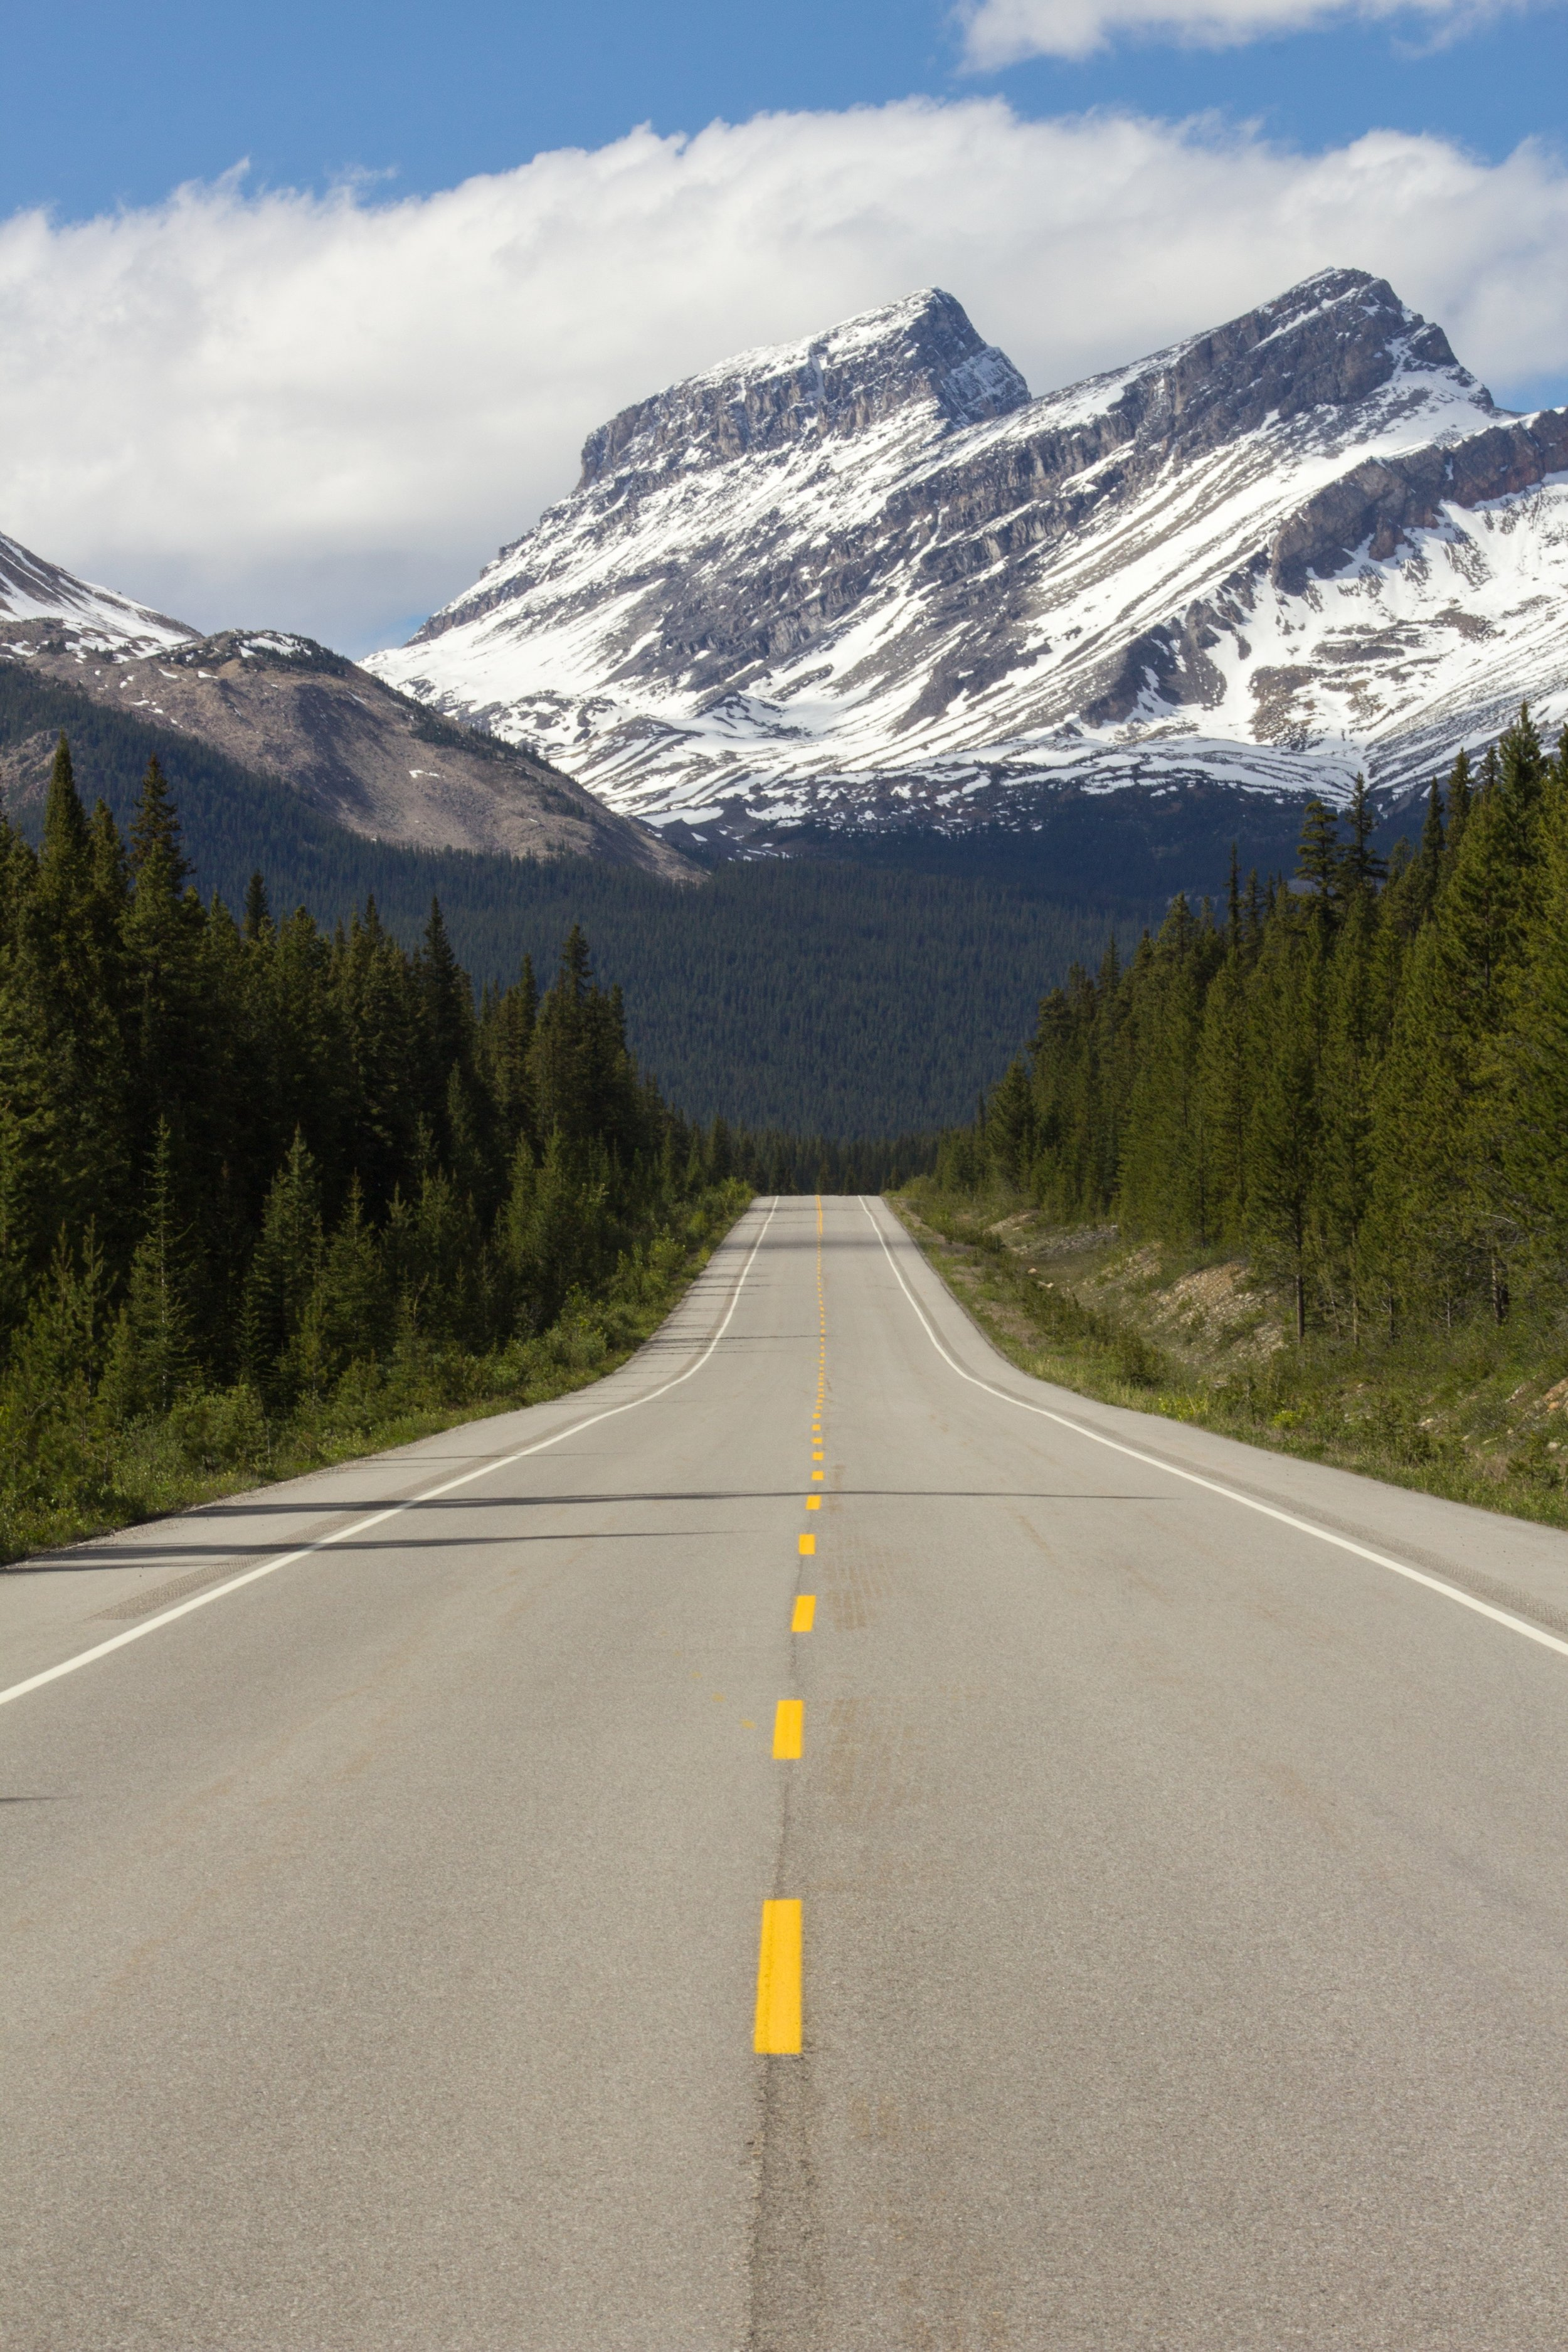 The mountainous drive of Icefields Parkway